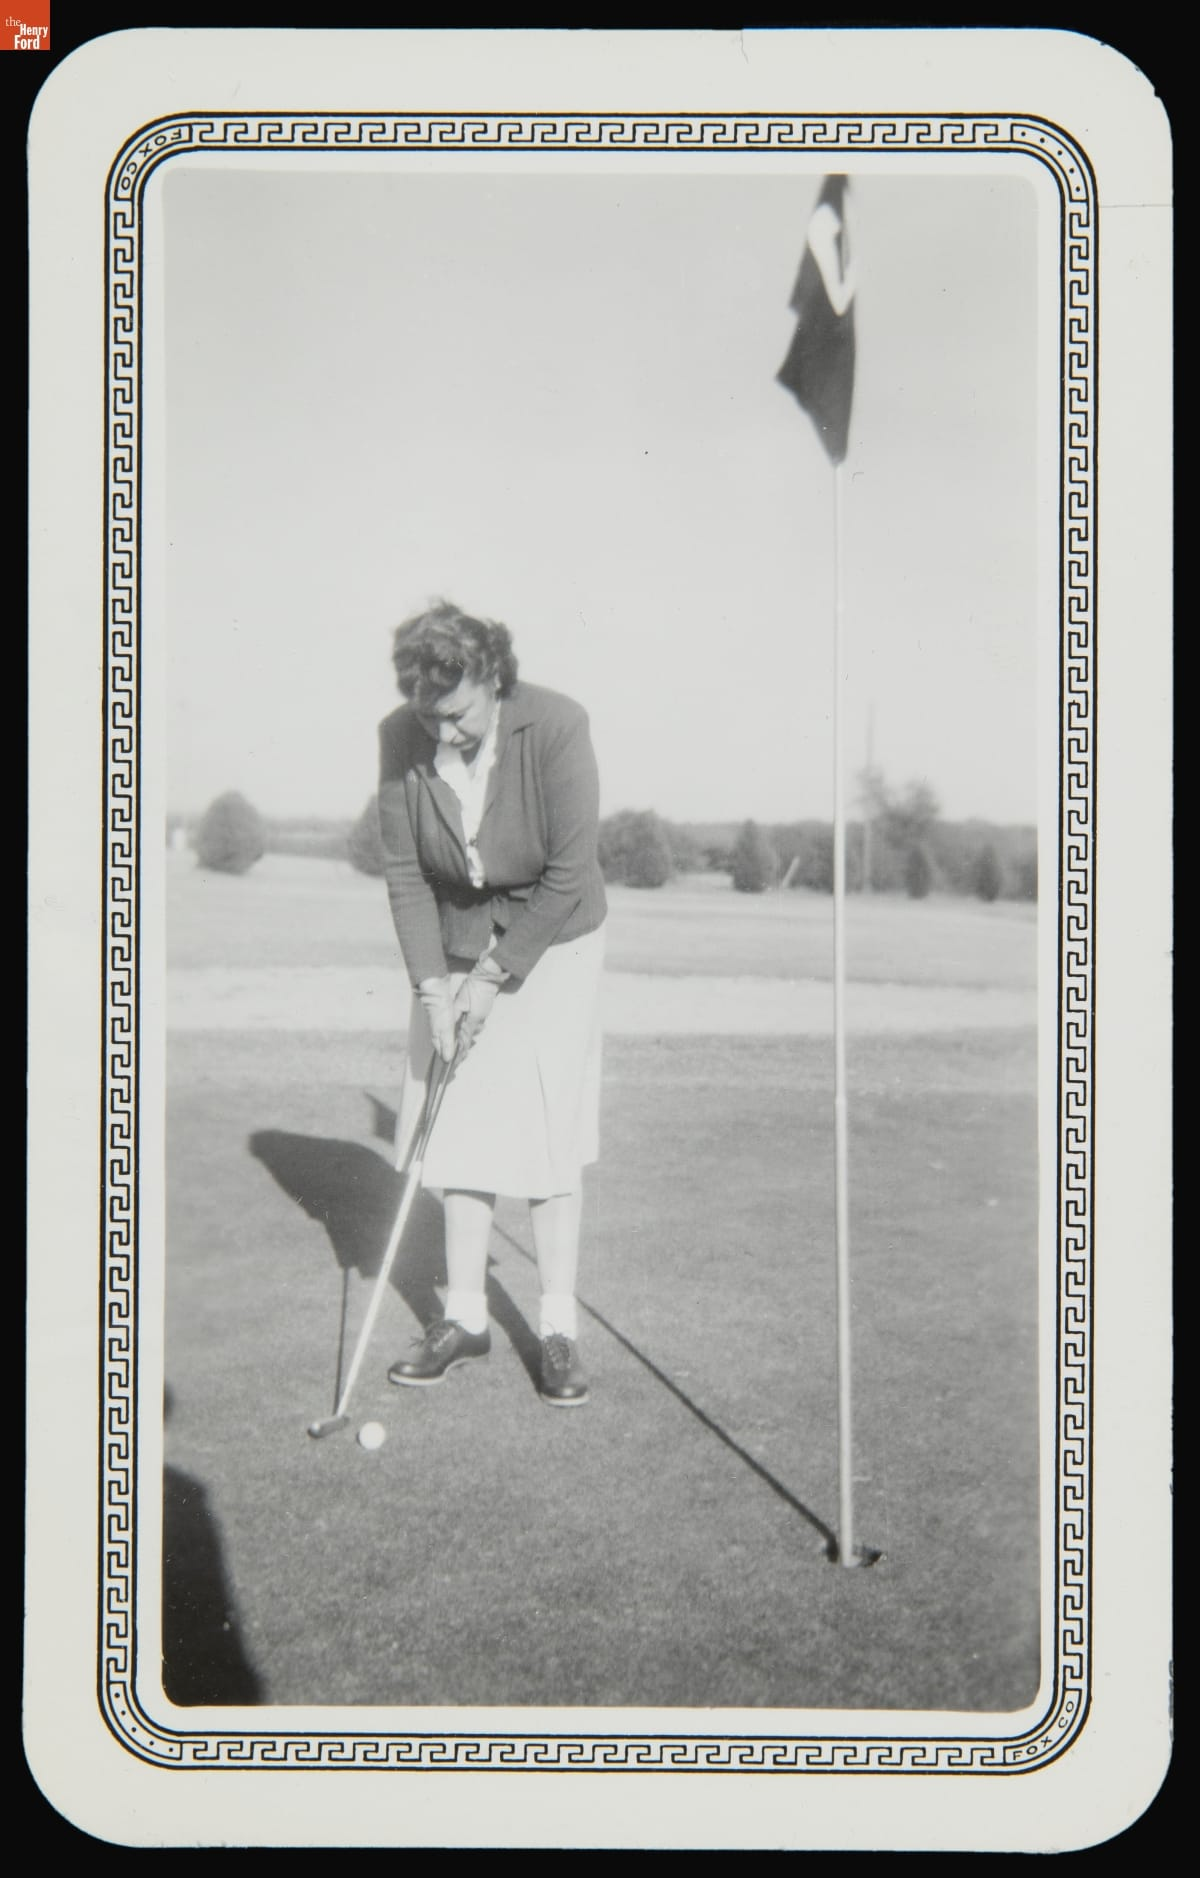 Woman in skirt and jacket bends over to putt a golf ball with hole marked with flag nearby